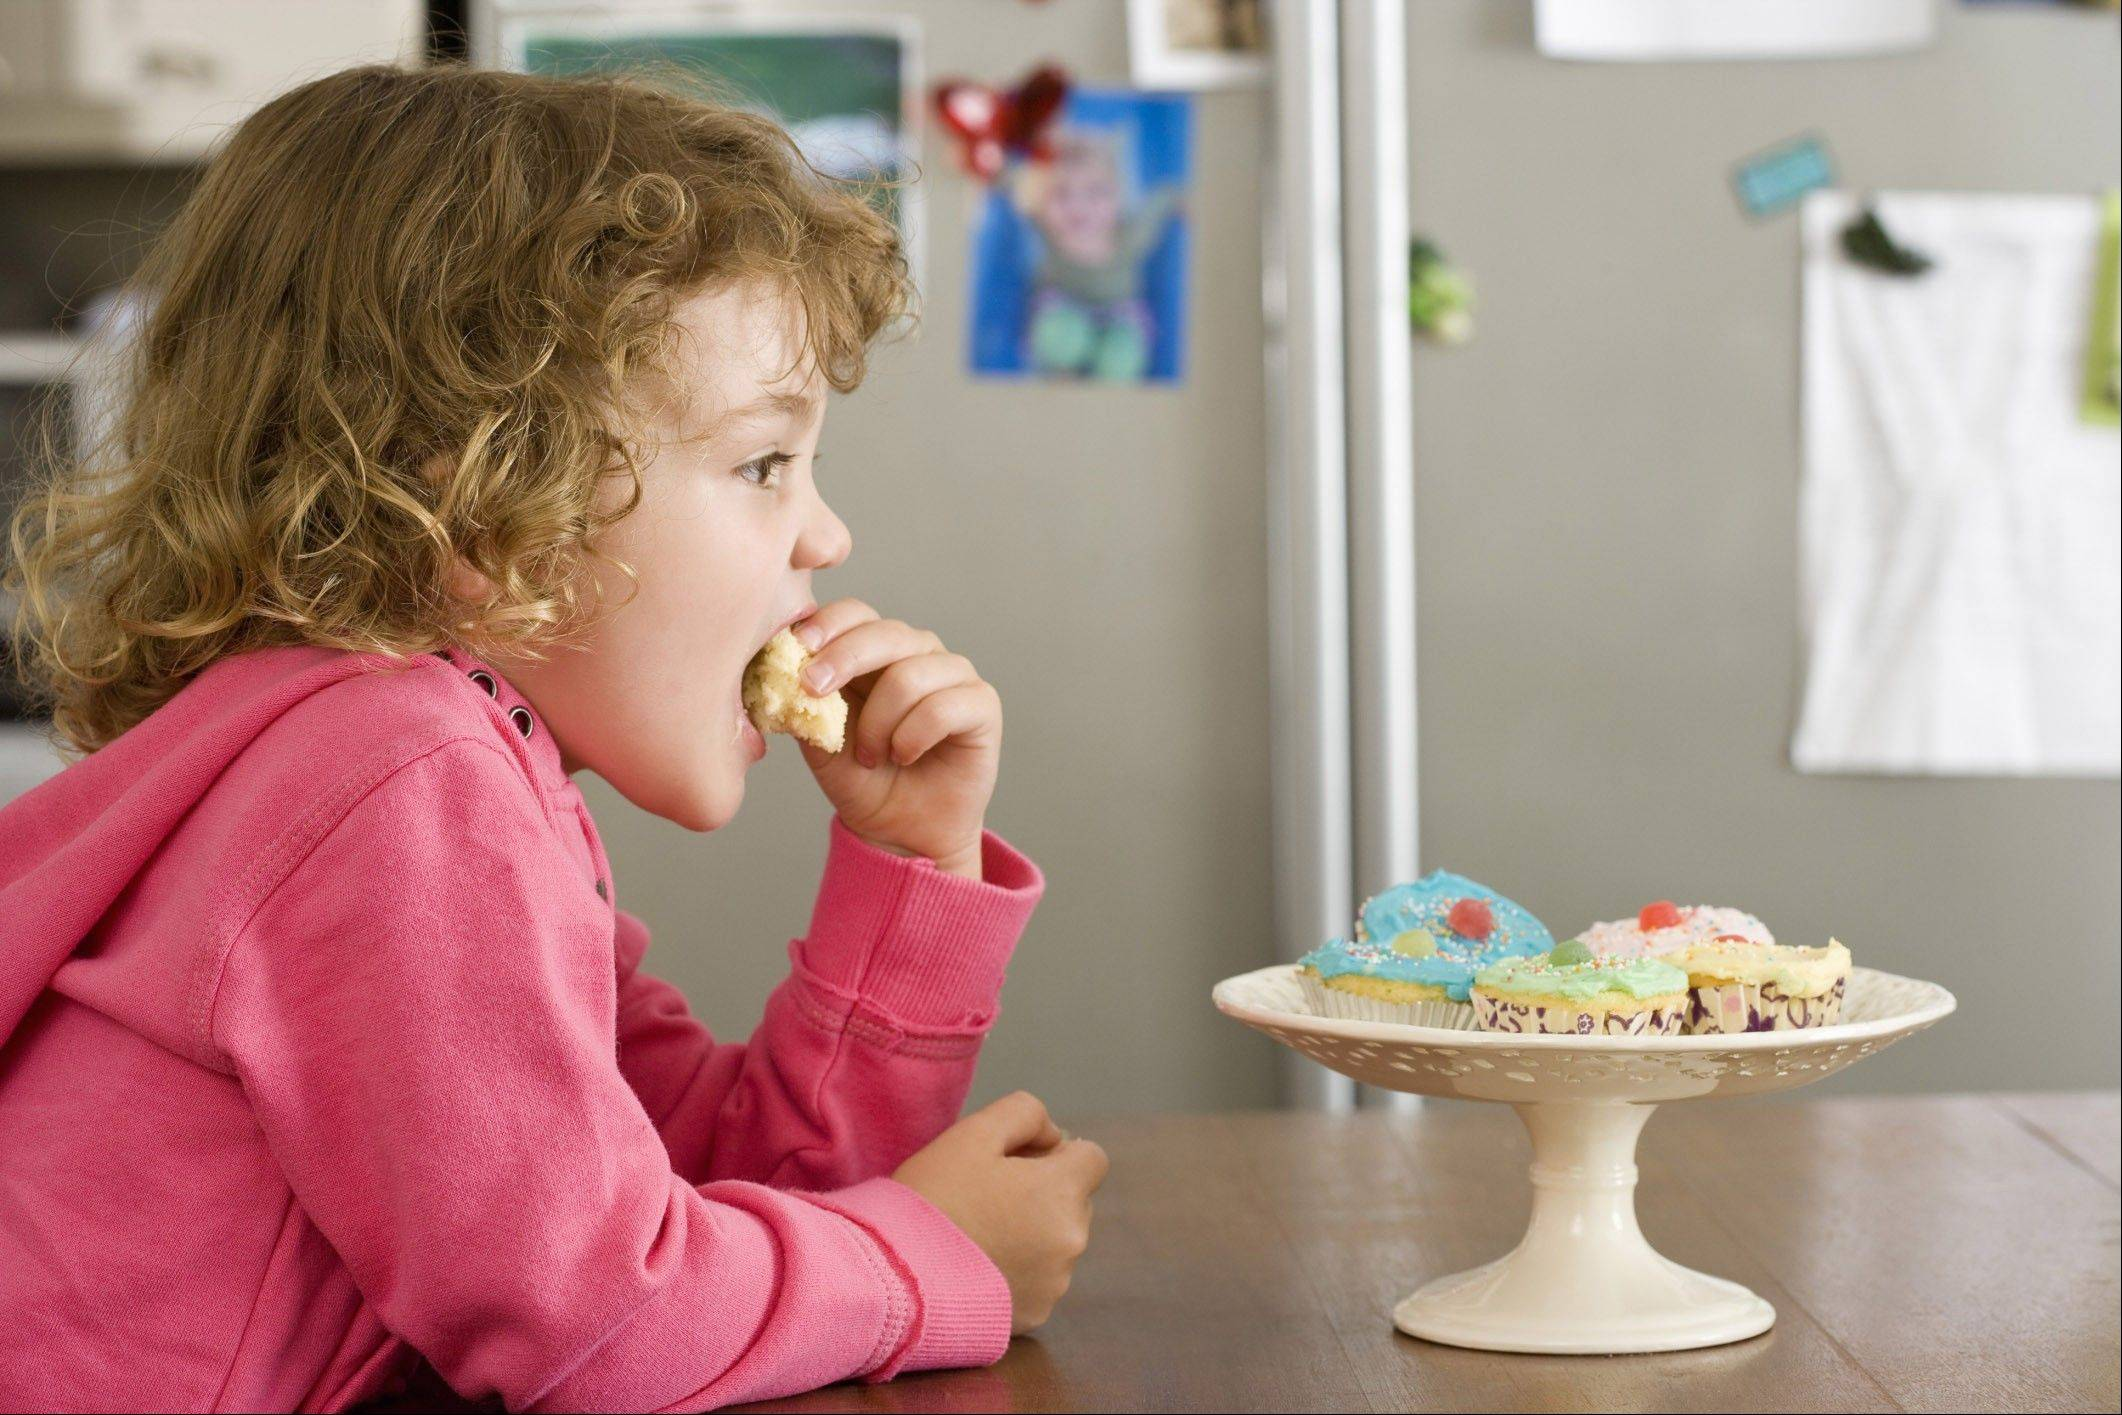 Some children may be more susceptible to sugar addictions than others. It also depends on their age.